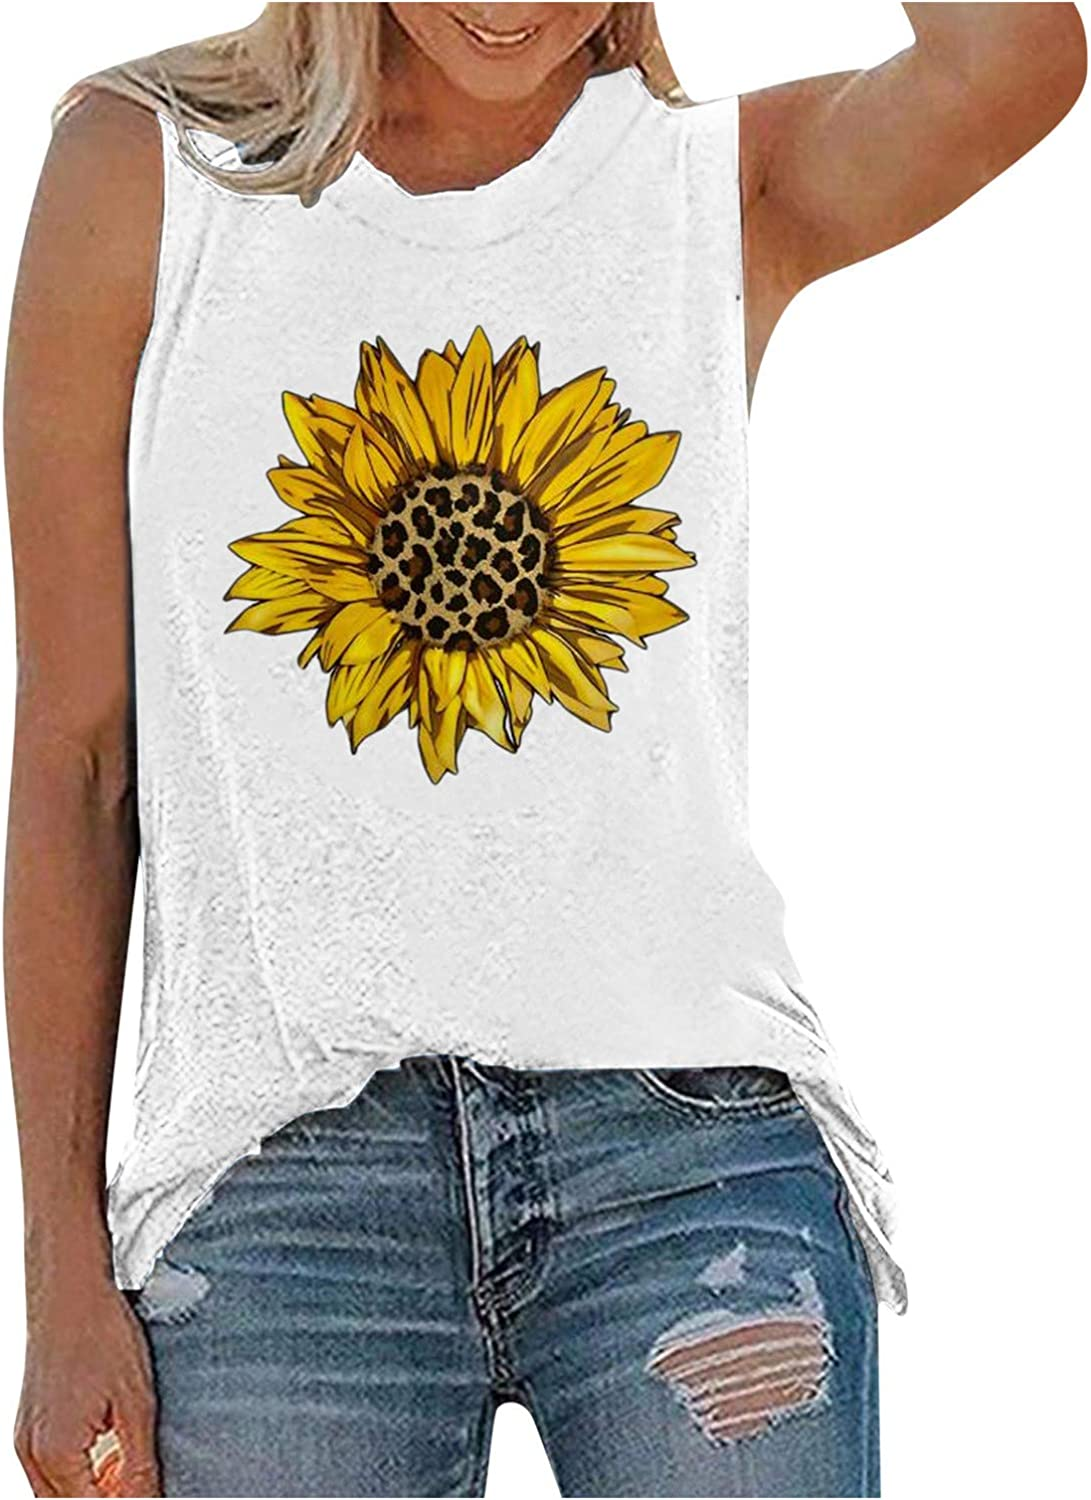 AODONG Tank Tops for Women, Womens Casual Sleeveless Summer Vest Tshirt 4th of July Workout Blouse Tank Top Tunic Tee